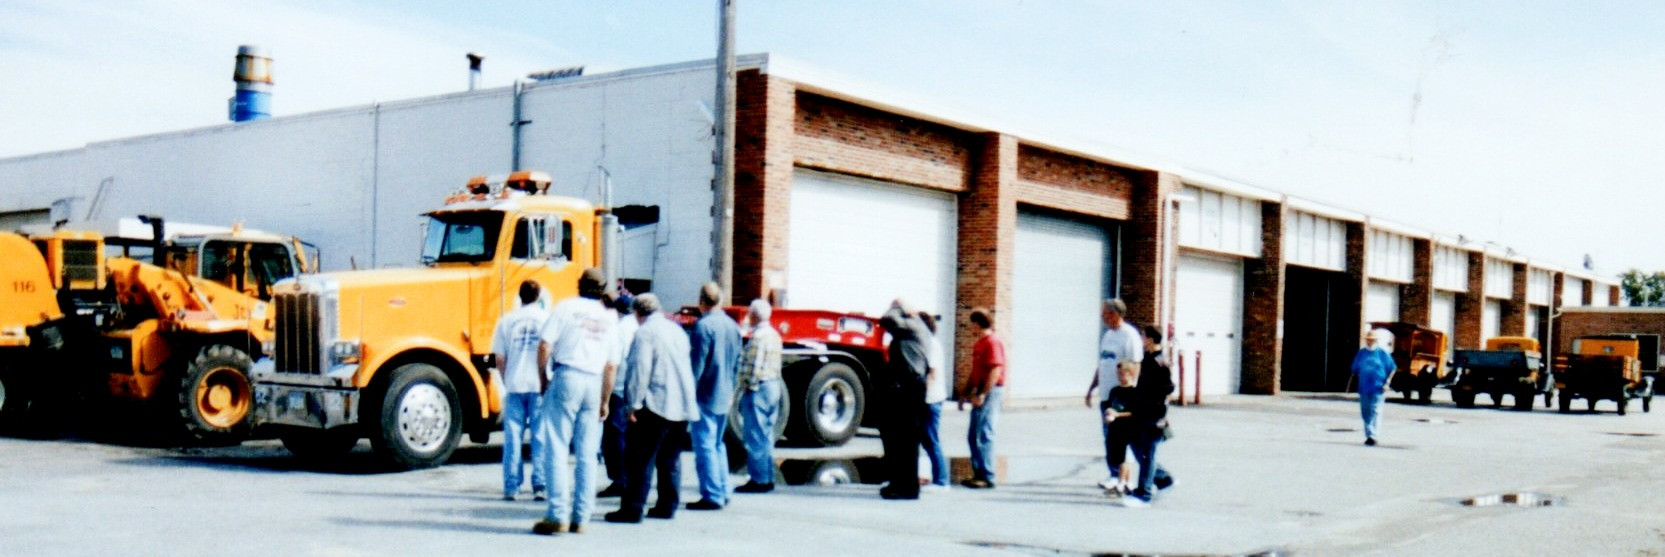 Chapter members viewing the 1999 Peterbilt 357 tractor.